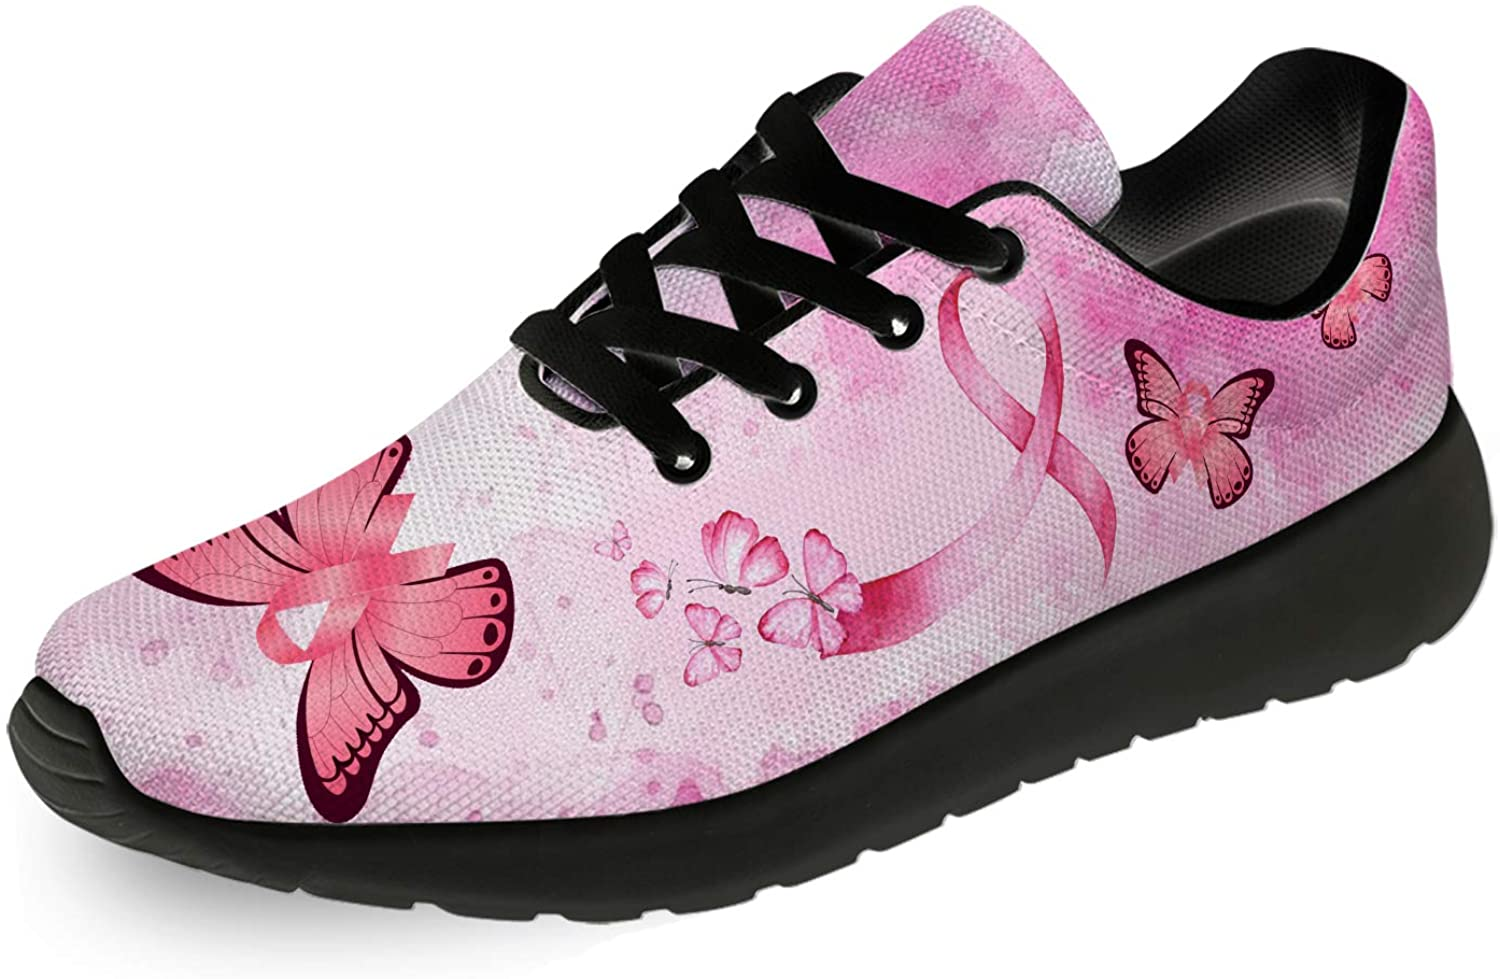 ADKING Women's Breast Cancer Pink Butterfly Running Sneakers Ultra Lightweight Comfortable Walking Shoes